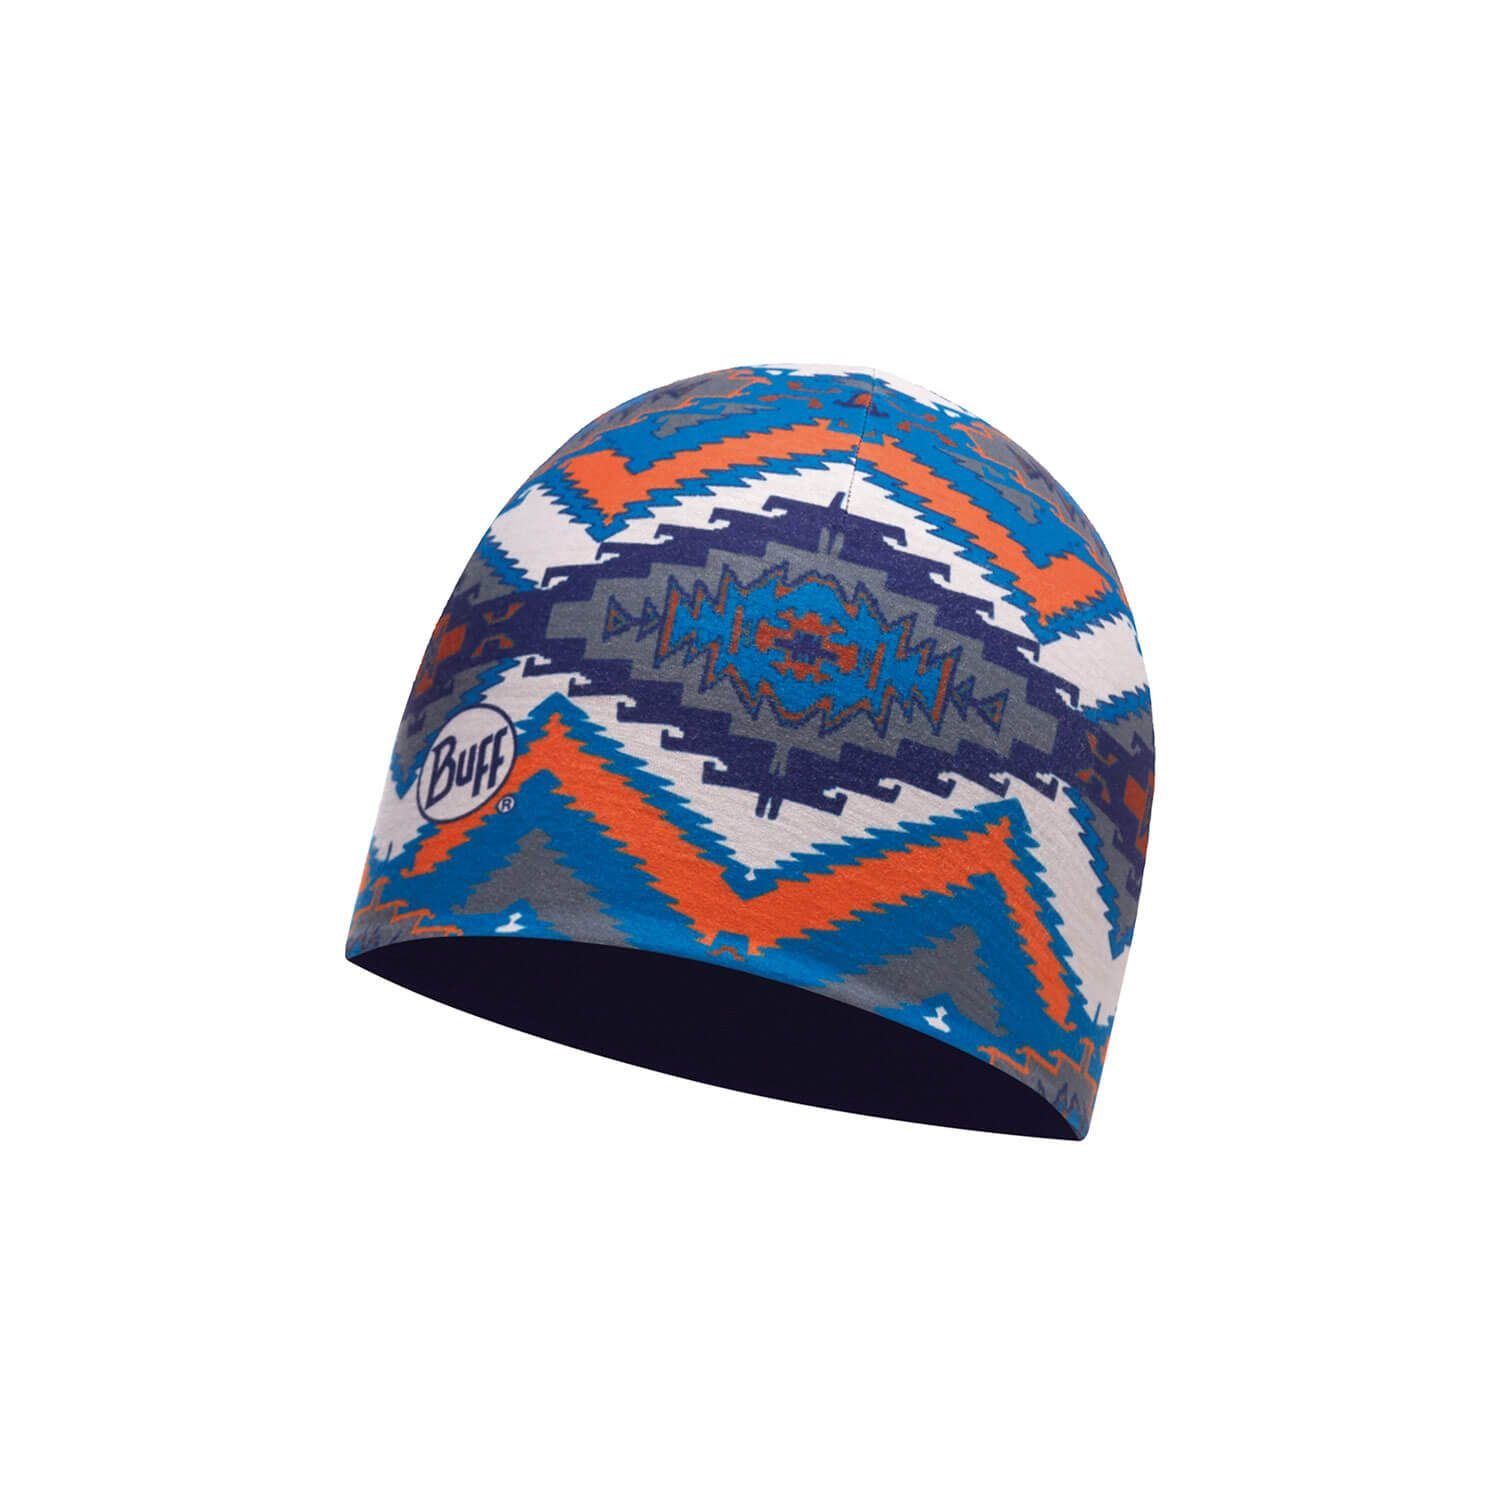 Шапка Buff - Coolmax Reversible Hat, Acoma Multi - Eclipse Blue (BU 113679.555.10.00)